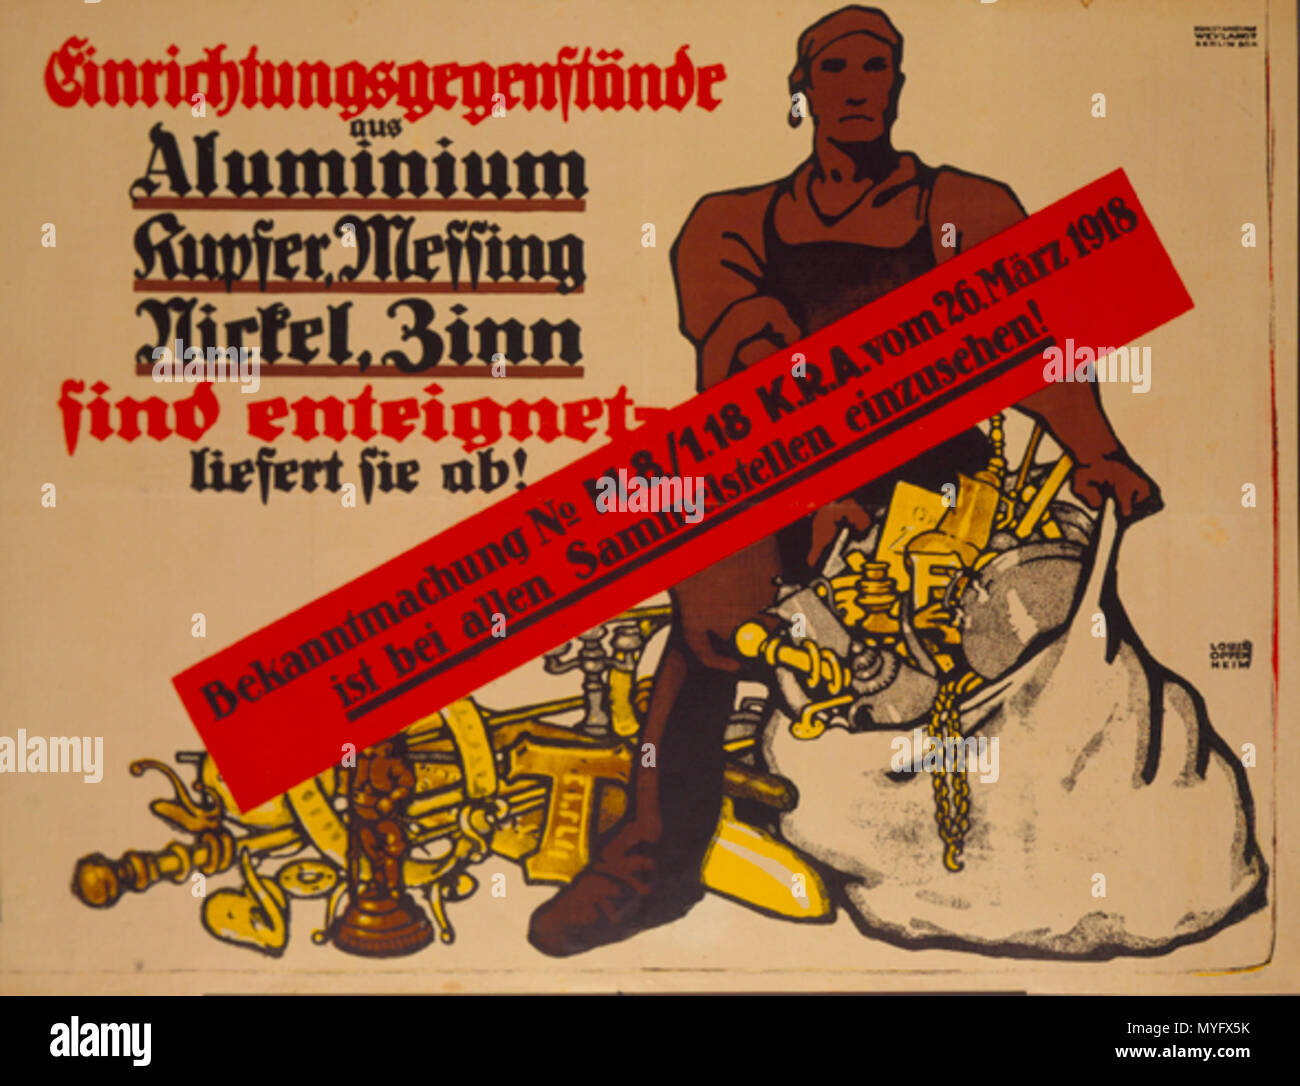 ". English: By 1918 the German economic situation had become so desperate that the government confiscated personal items made of metal. The poster, designed by Louis Oppenheim, reads: ""Home Furnishings made of Aluminum, Copper, Nickel, Tin are Confiscated - Deliver Them Now! The Proclamation No. M./1.18 from K[riegs]R[ohstoff]A[bteilung] [War Materials Department] of March 26, 1918, is to be in view at all collection points."" The metals collected in this way were melted down and used for the war effort. 1918. Louis Oppenheim (1879 - 1936) 156 Einrichtungsgegenstaende - Stock Image"